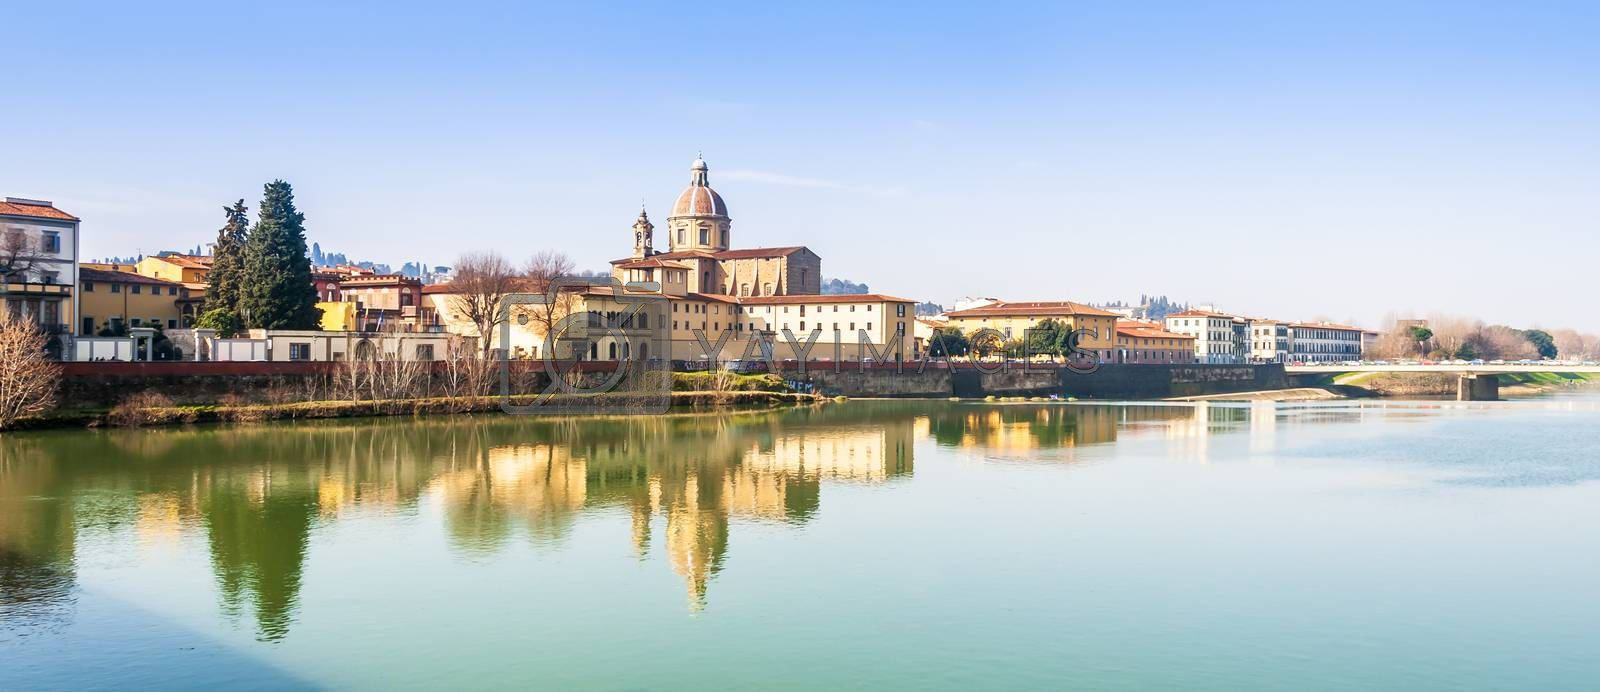 Refurbishment of the shores of Florence, Along the Arno river in Tuscany, Italy